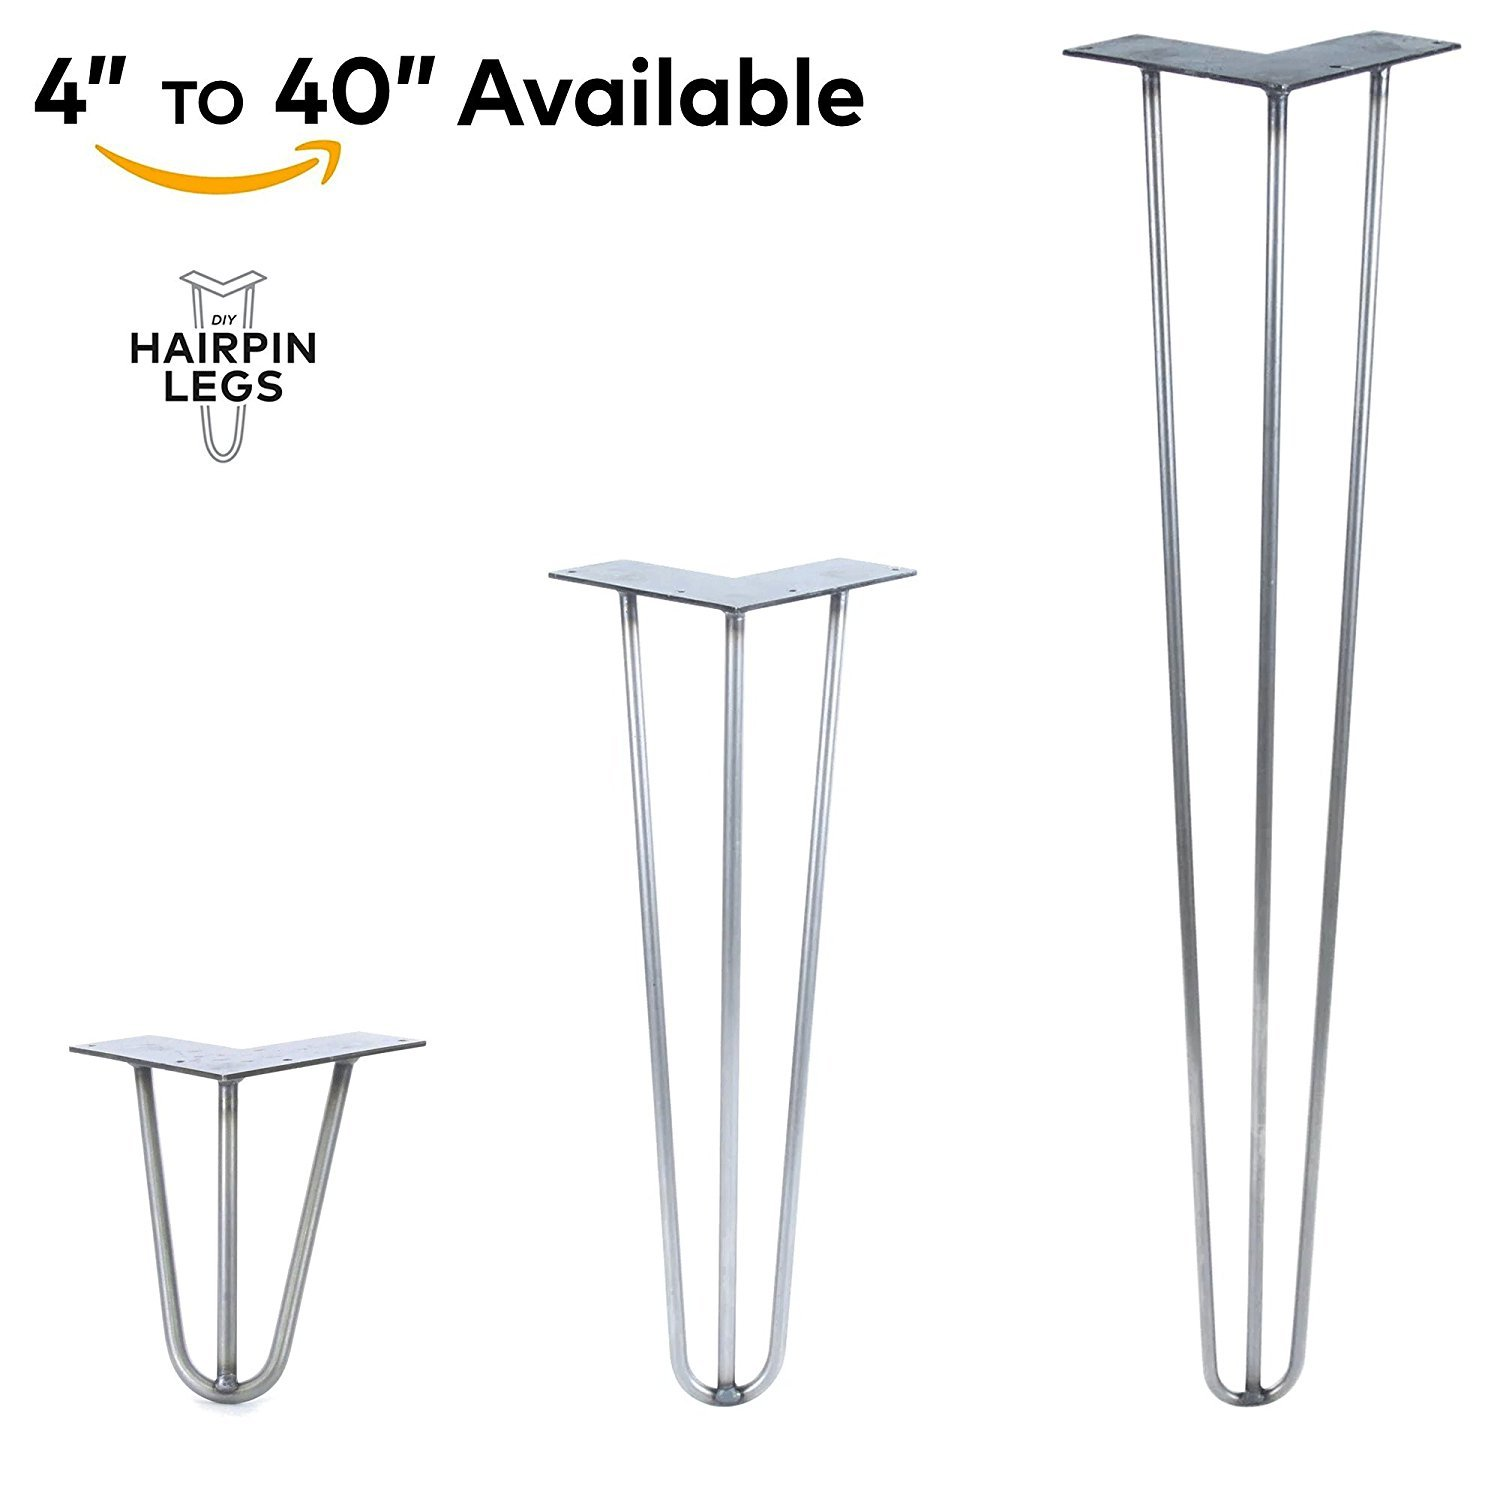 "4'' - 40'' Hairpin Legs - 3Rod Design - Raw Steel - 1/2'' Diameter - MADE in the USA (4"" Height x 1/2'' Diameter - Each Leg Sold Separately) by DIY Hairpin Legs"